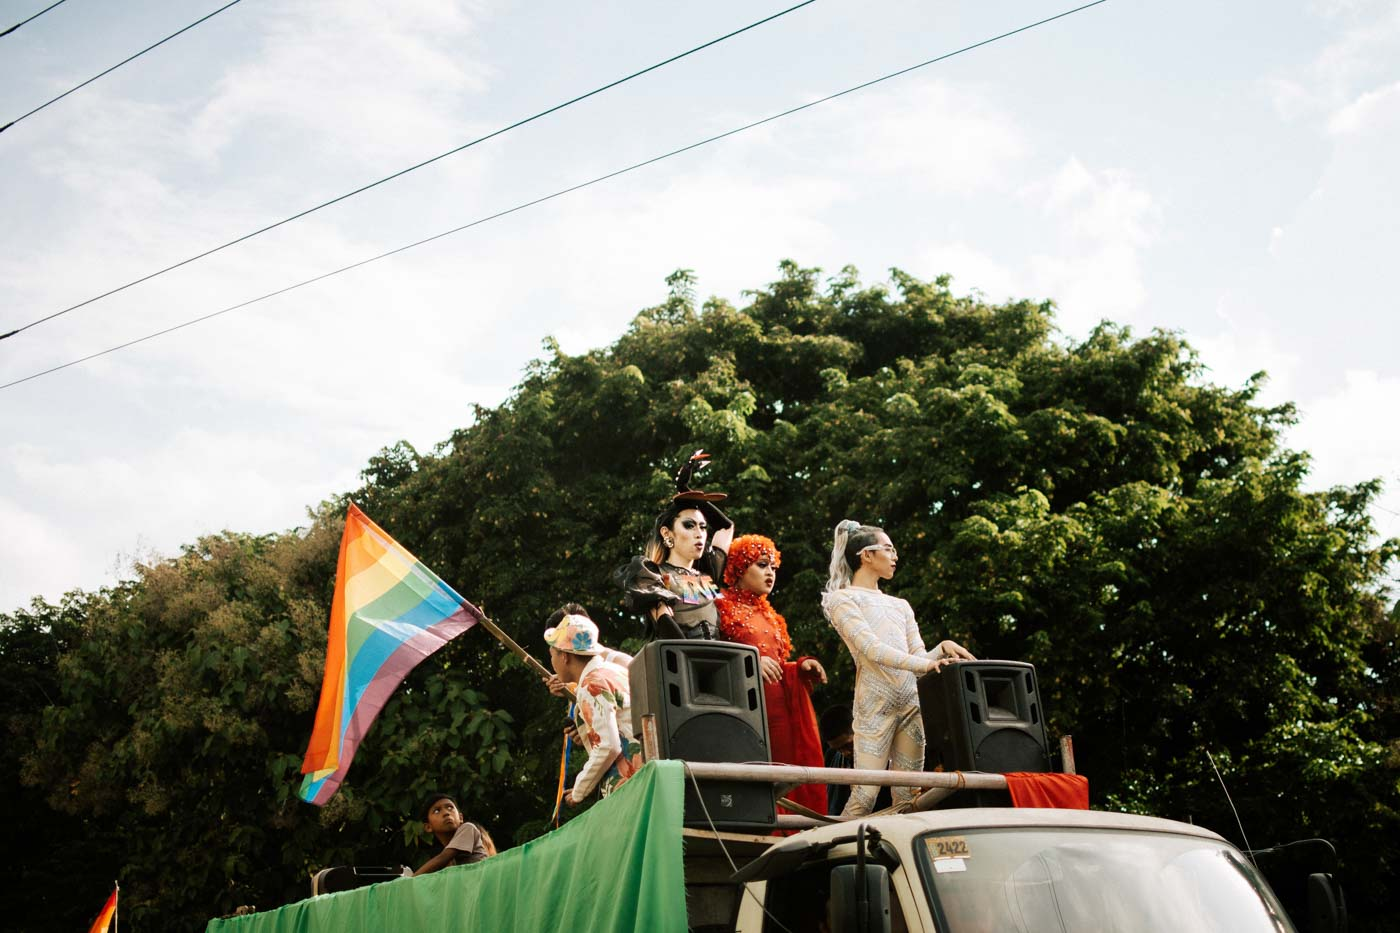 DRAG QUEEN. Local drag talents head the pride float and hype up the crowd. Photo by Jorge Gamboa